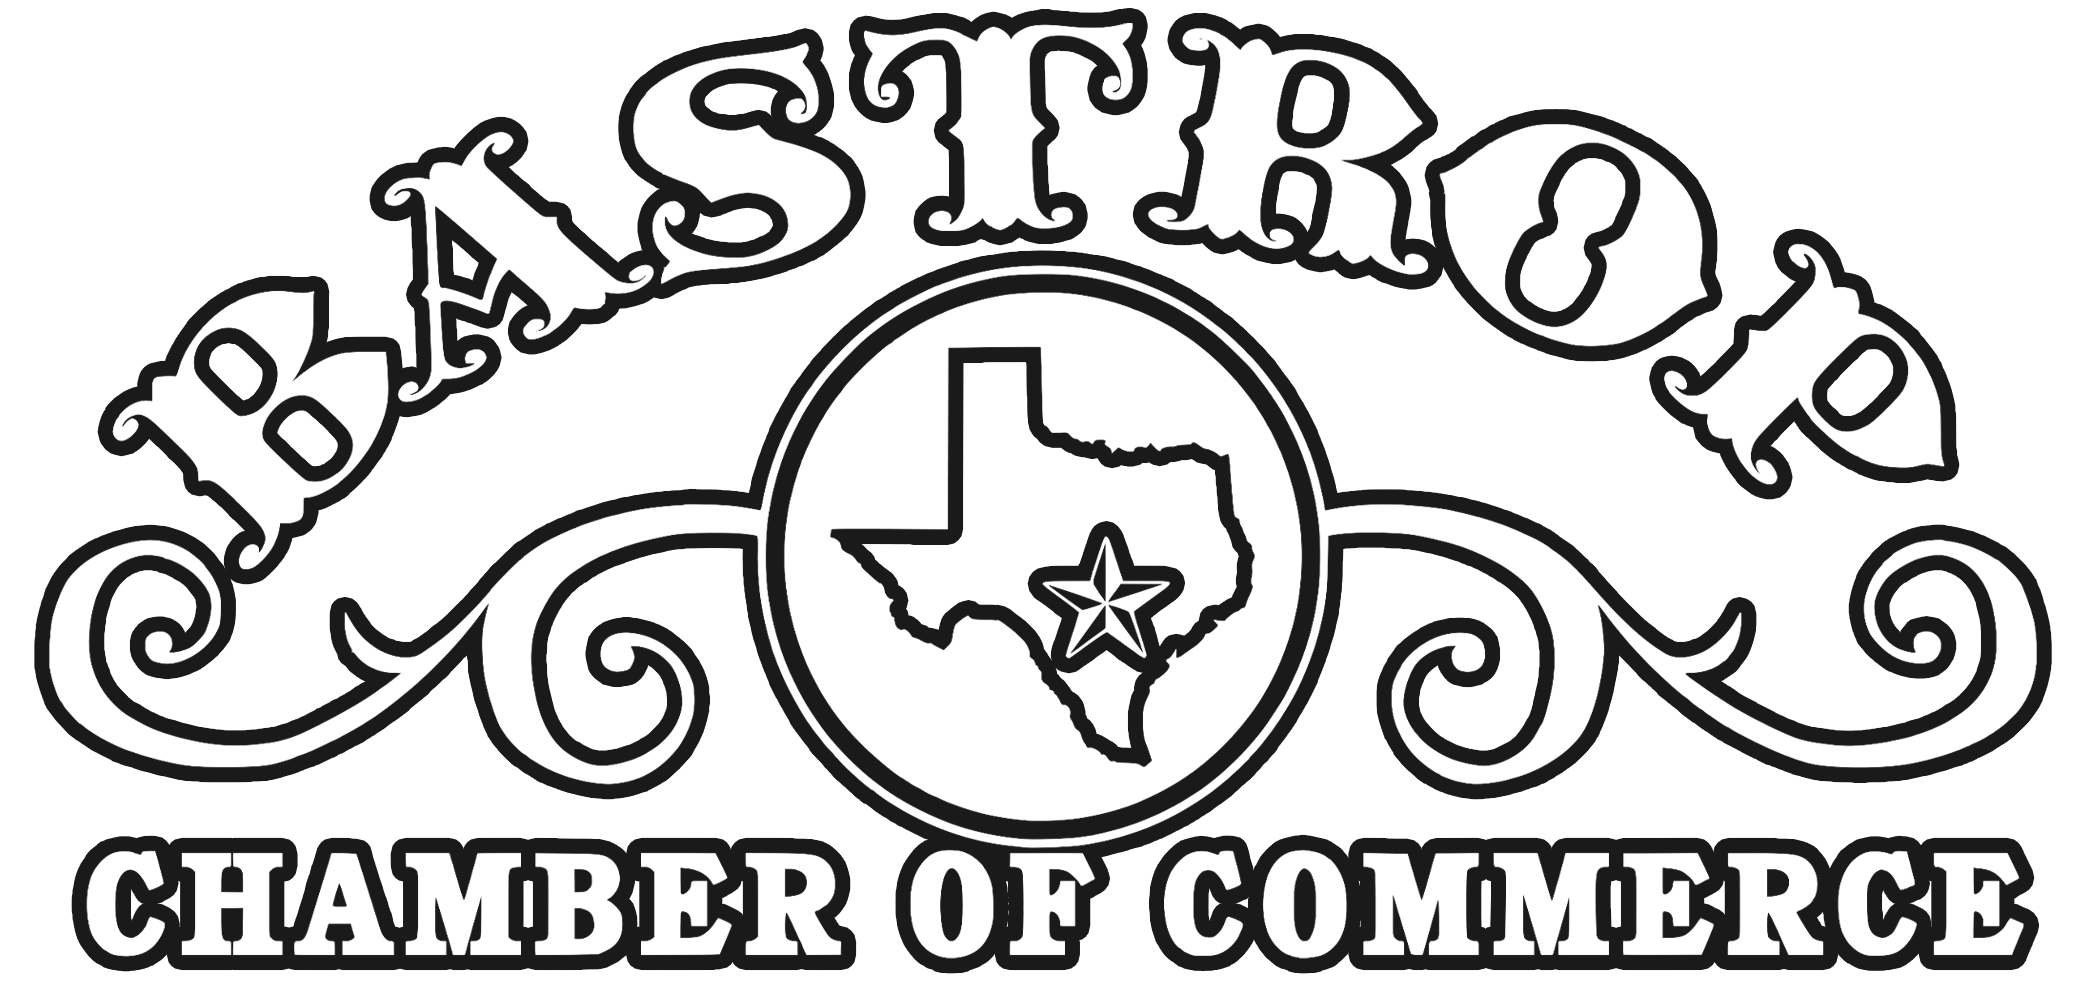 Bastrop chamber of commerce logo